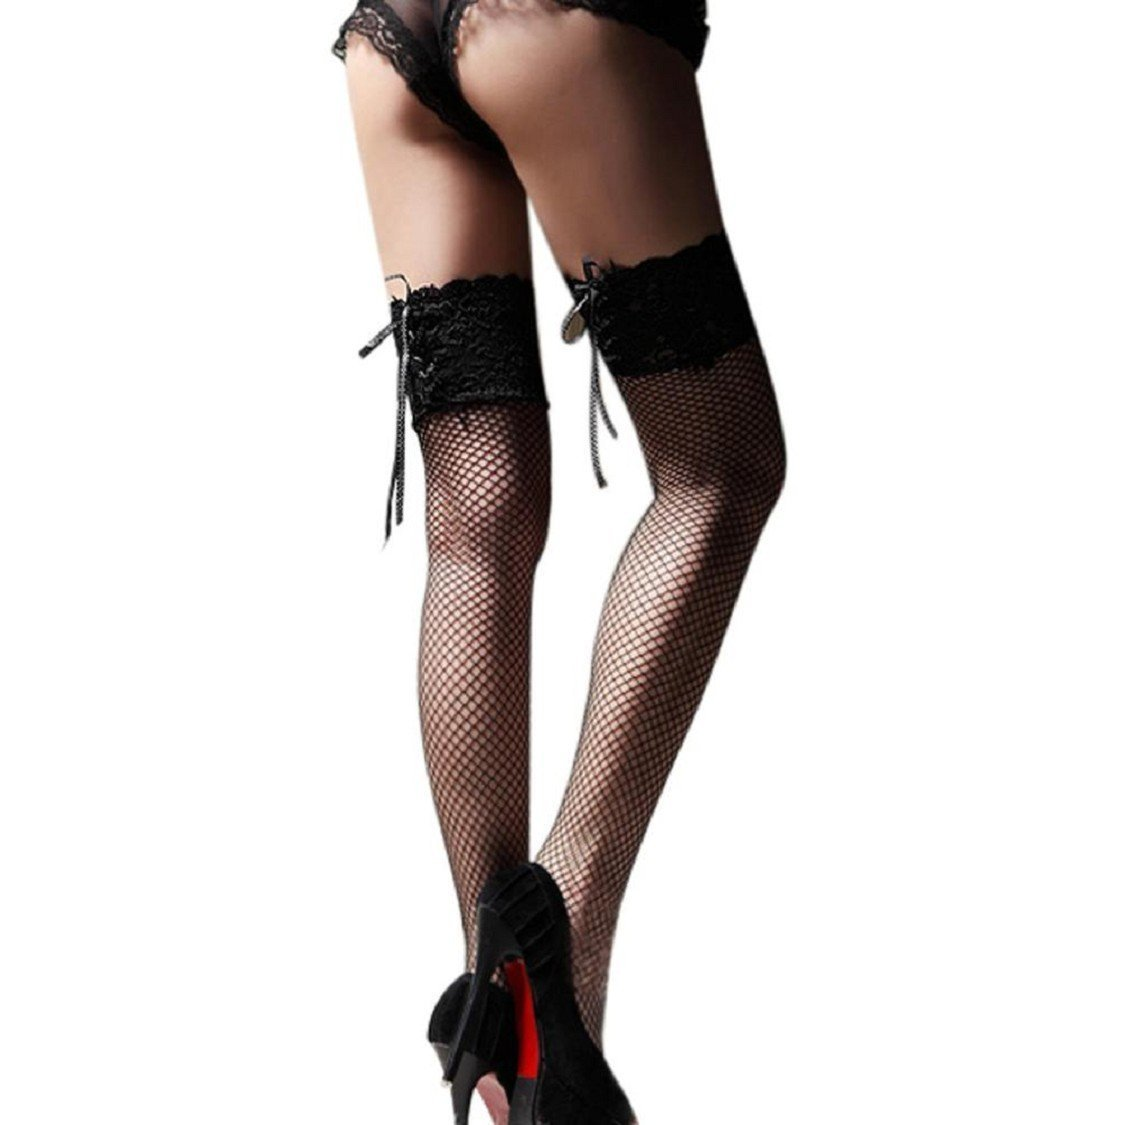 c22d4ad4f2fcf6 Get Quotations · MAIDIEN Hollow Out Mesh Sexy Sheer Silk Stocking Long Socks  Women Girls Thigh High Over The